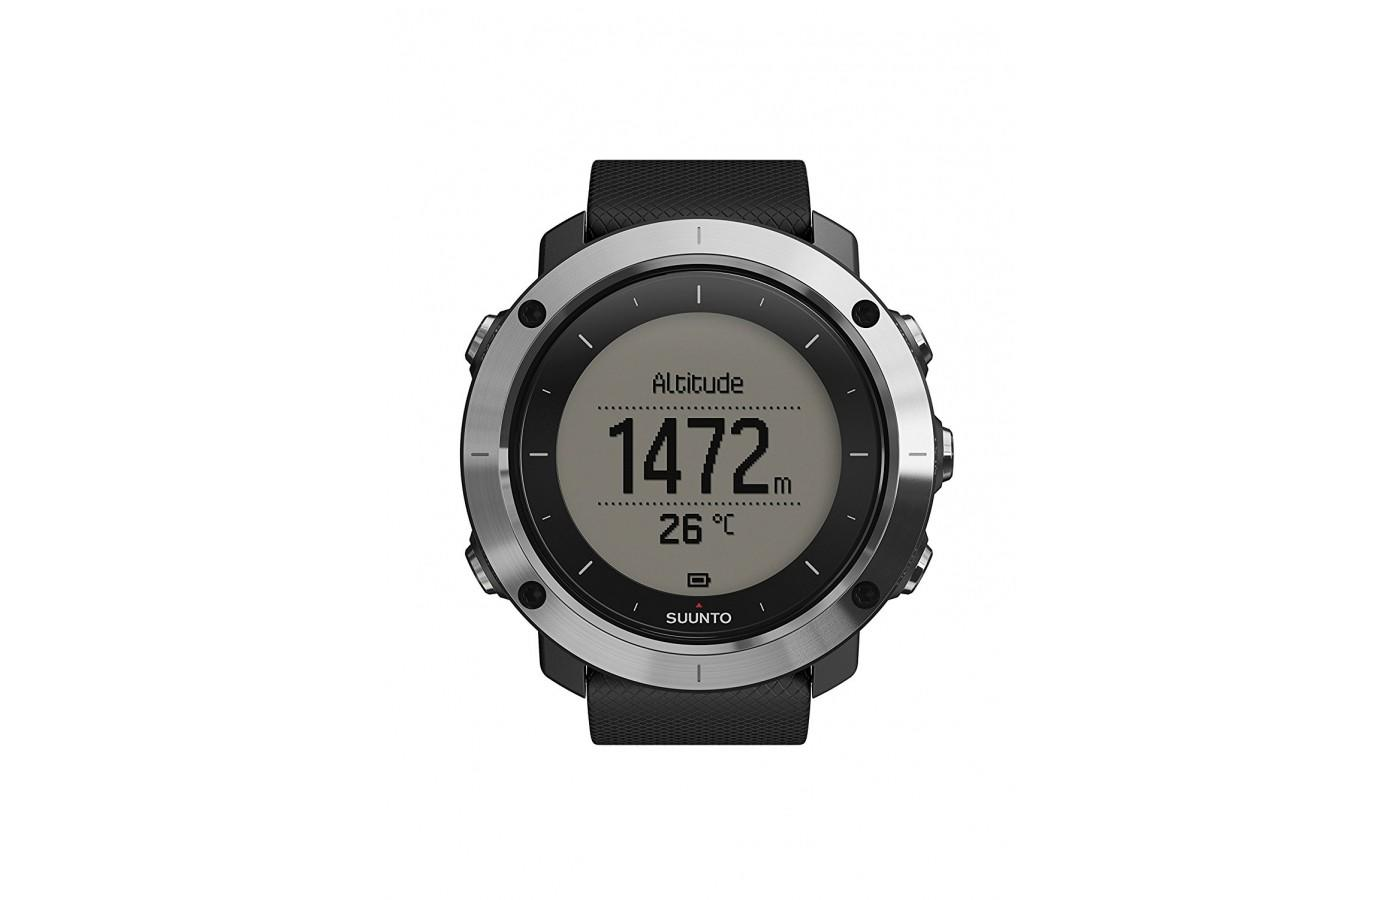 Suunto Traverse will show you altitude and temperature